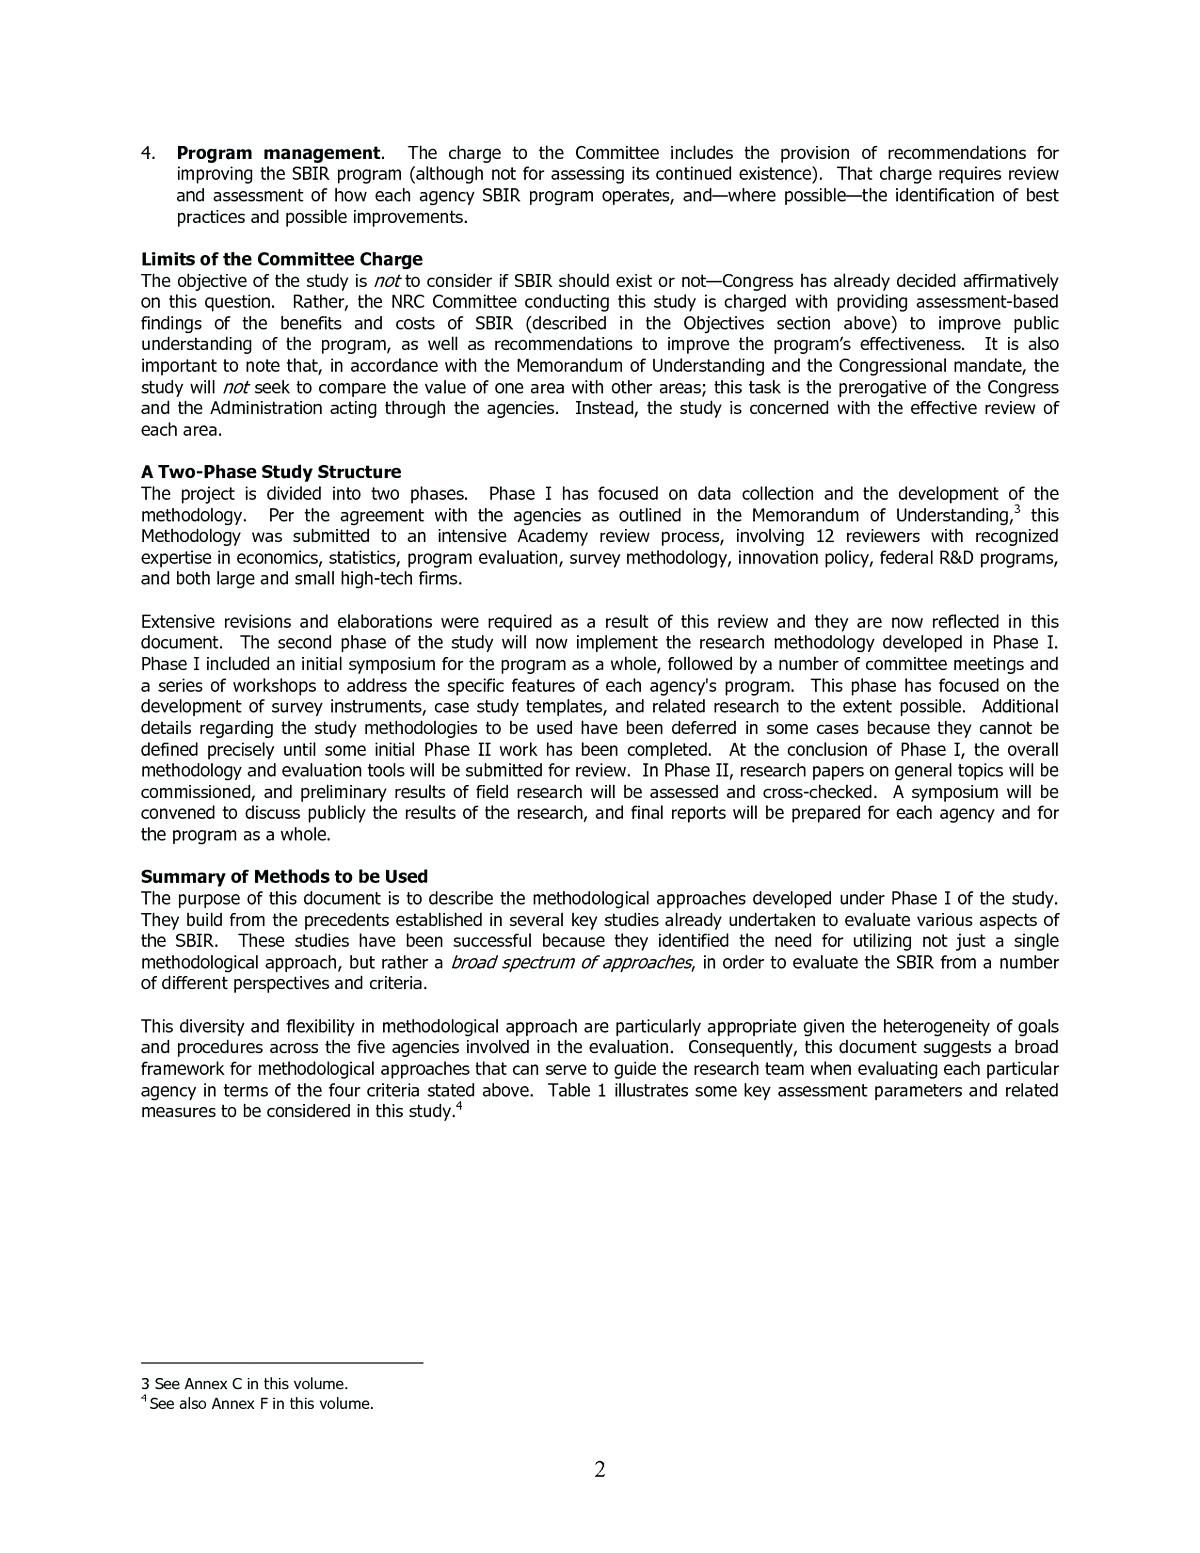 003 Project Management Executive Summary Template Format For